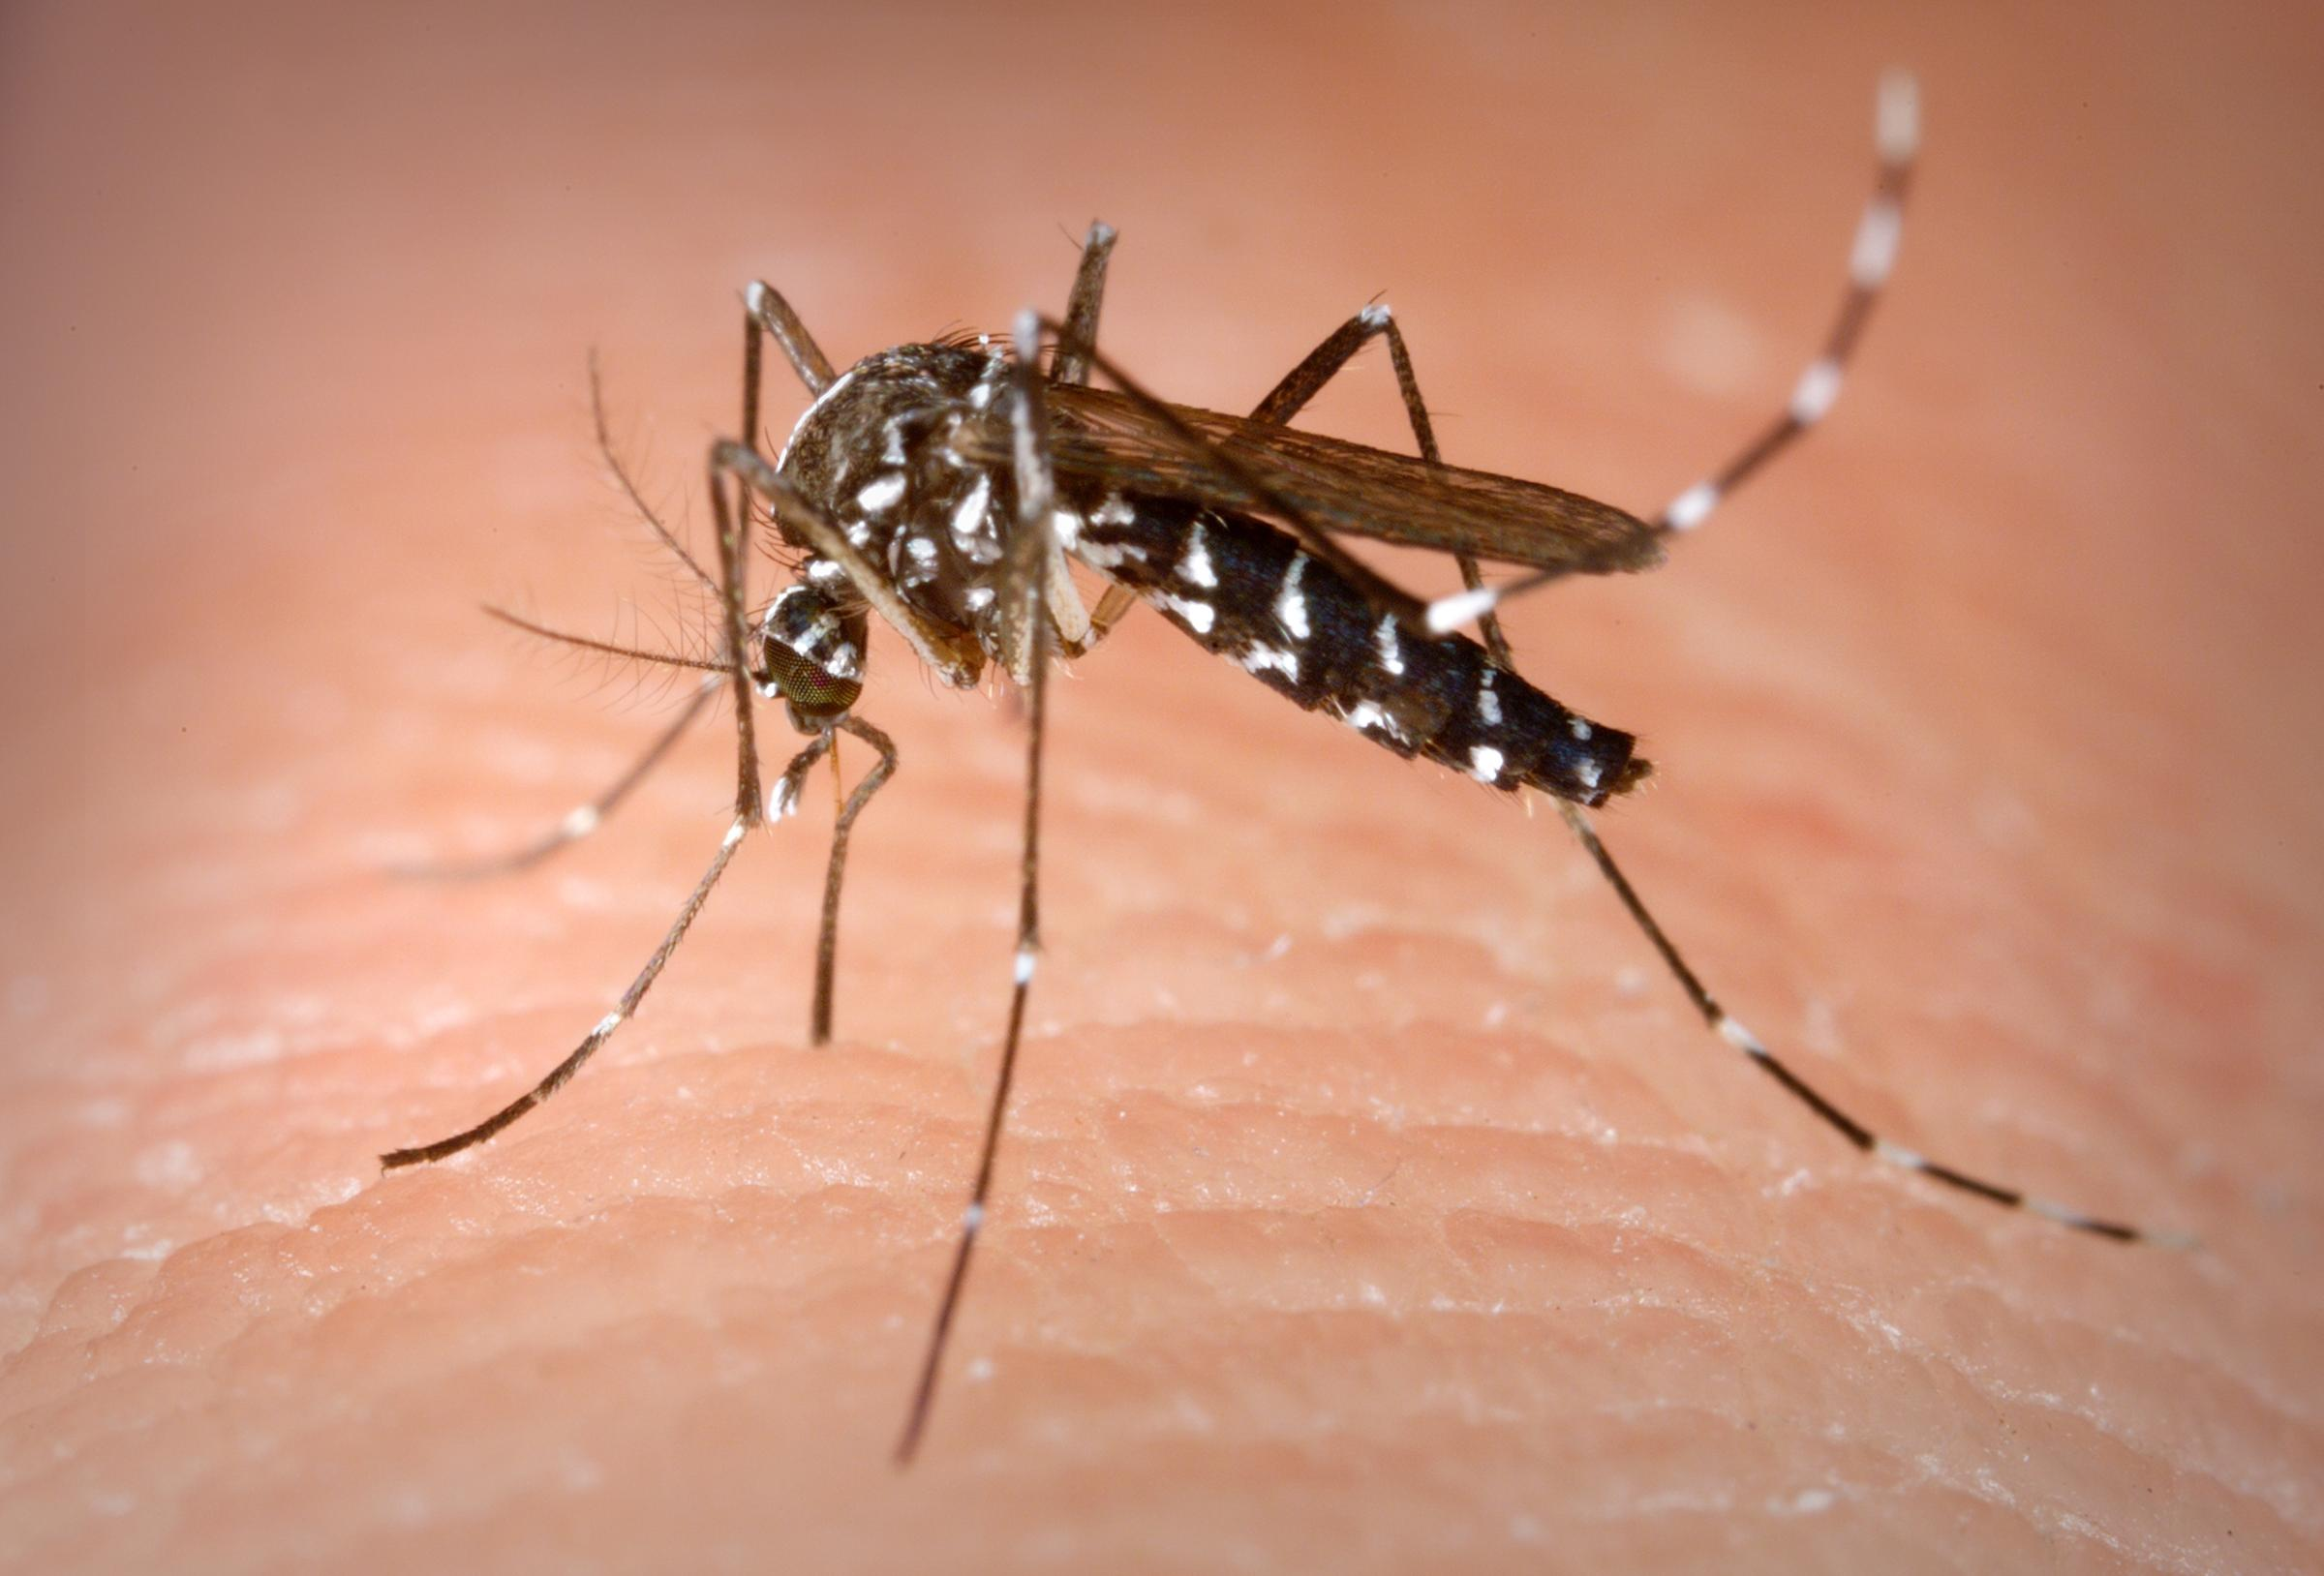 West Nile Virus Found in Mosquitos in Long Beach